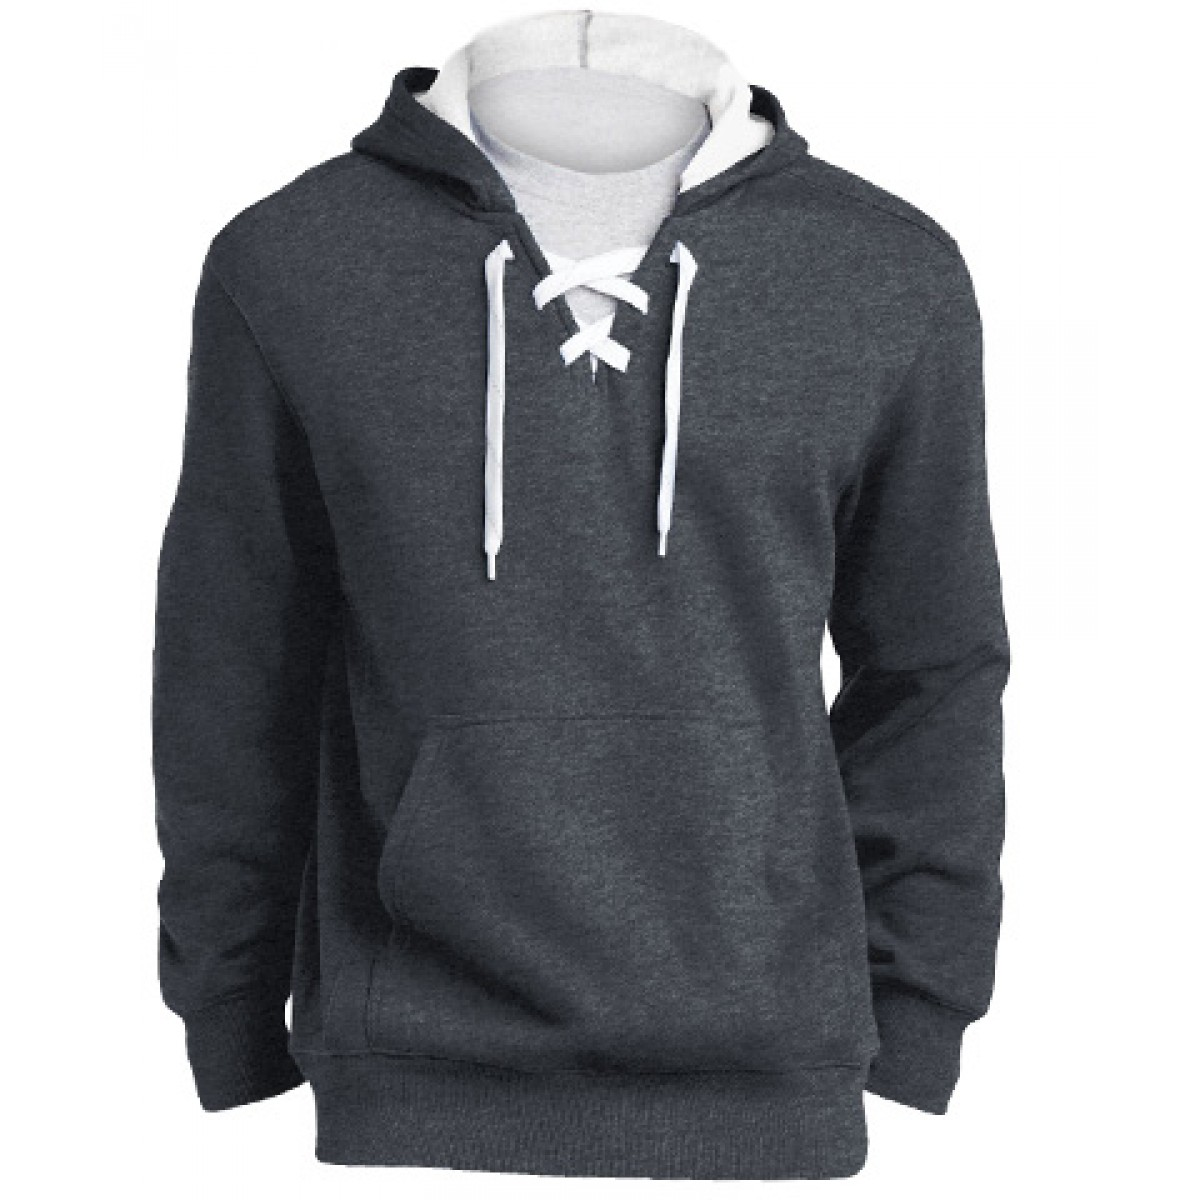 Lace Up Pullover Hooded Sweatshirt-Charocal-L